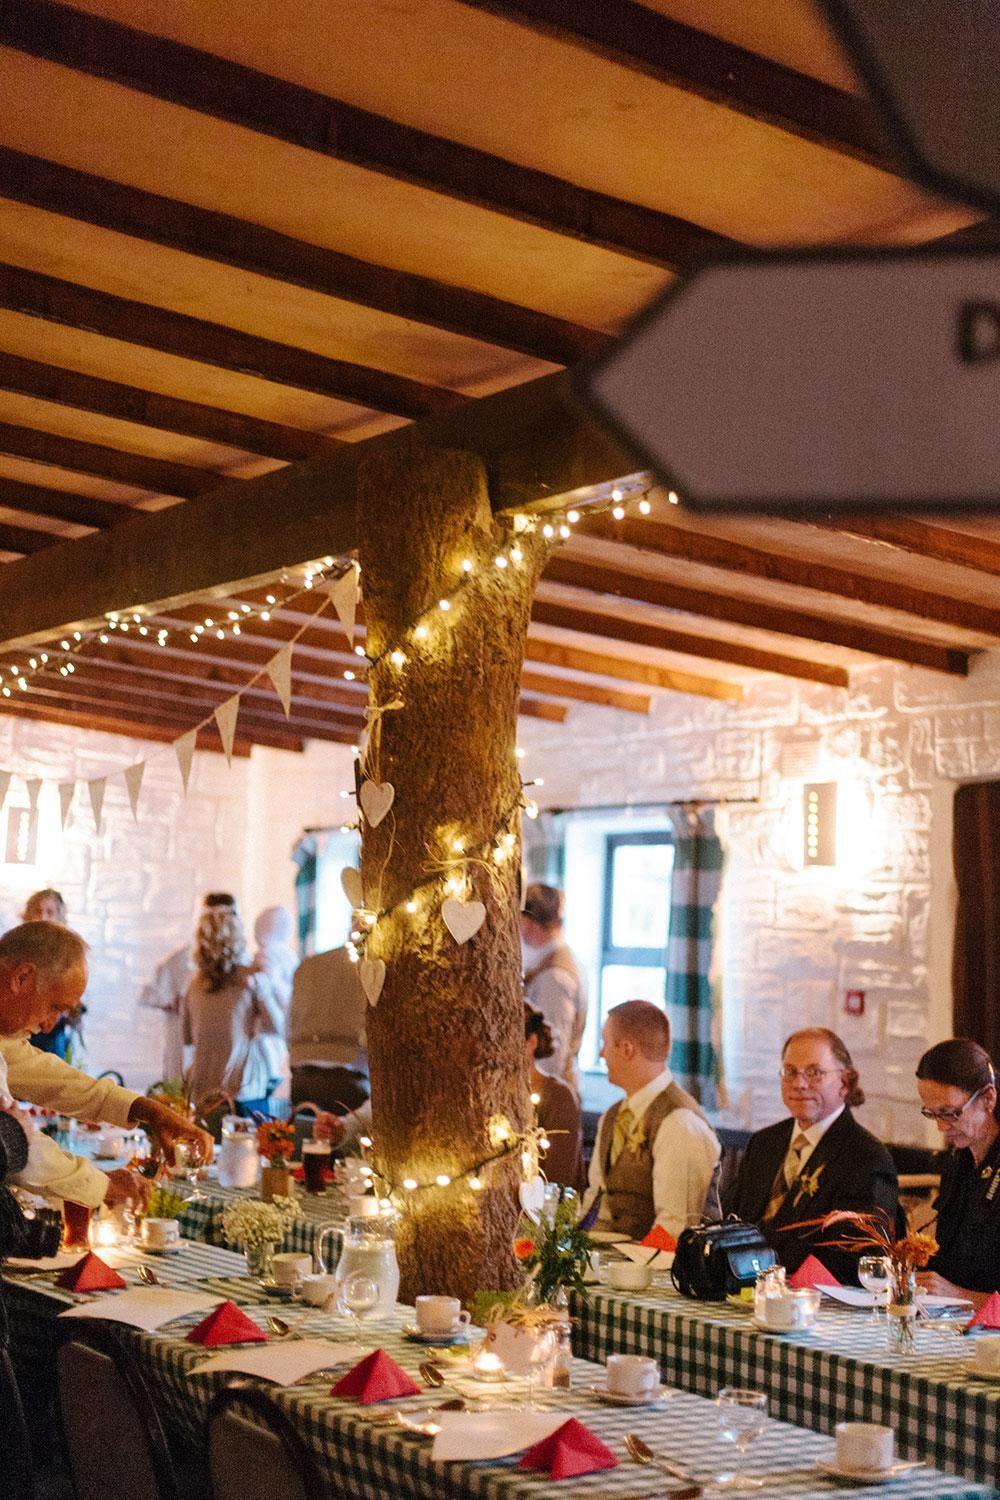 Get ideas for unique #decorations at your #wedding | Photos by Lisa O'Dwyer and Nuria Cañestro